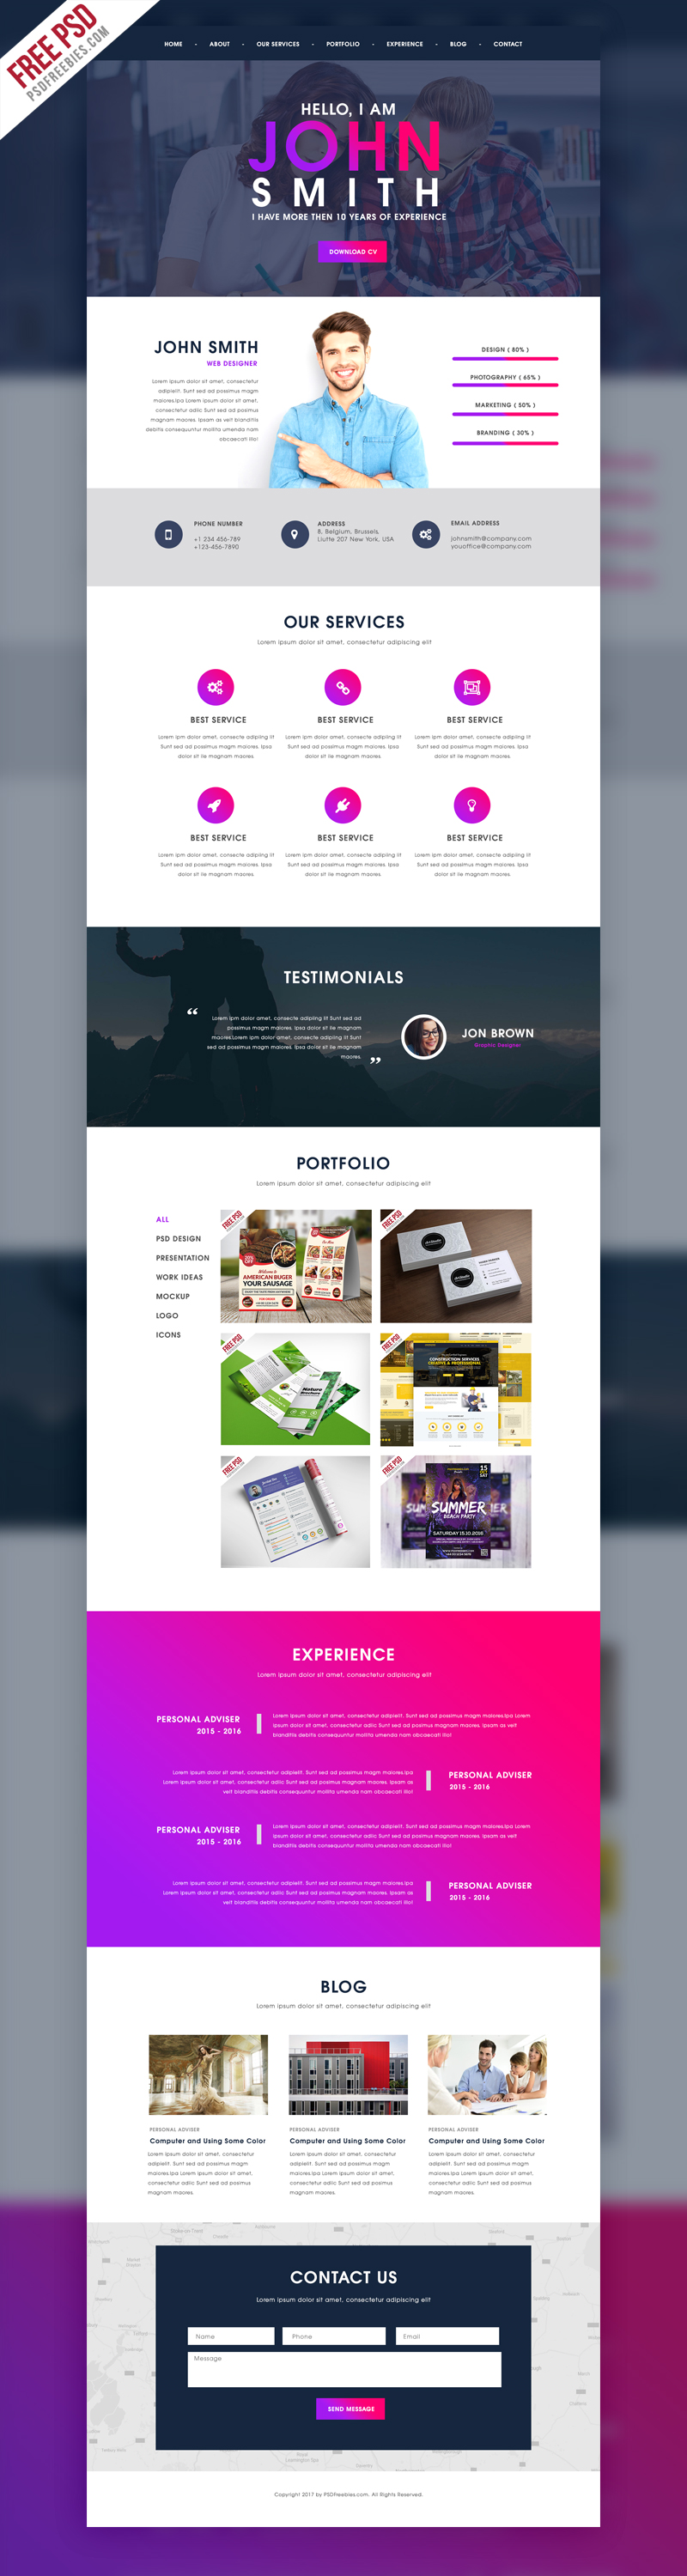 download creative one page portfolio website template free psd this is a minimal flat clean modern psd template for anyone who wants to build an